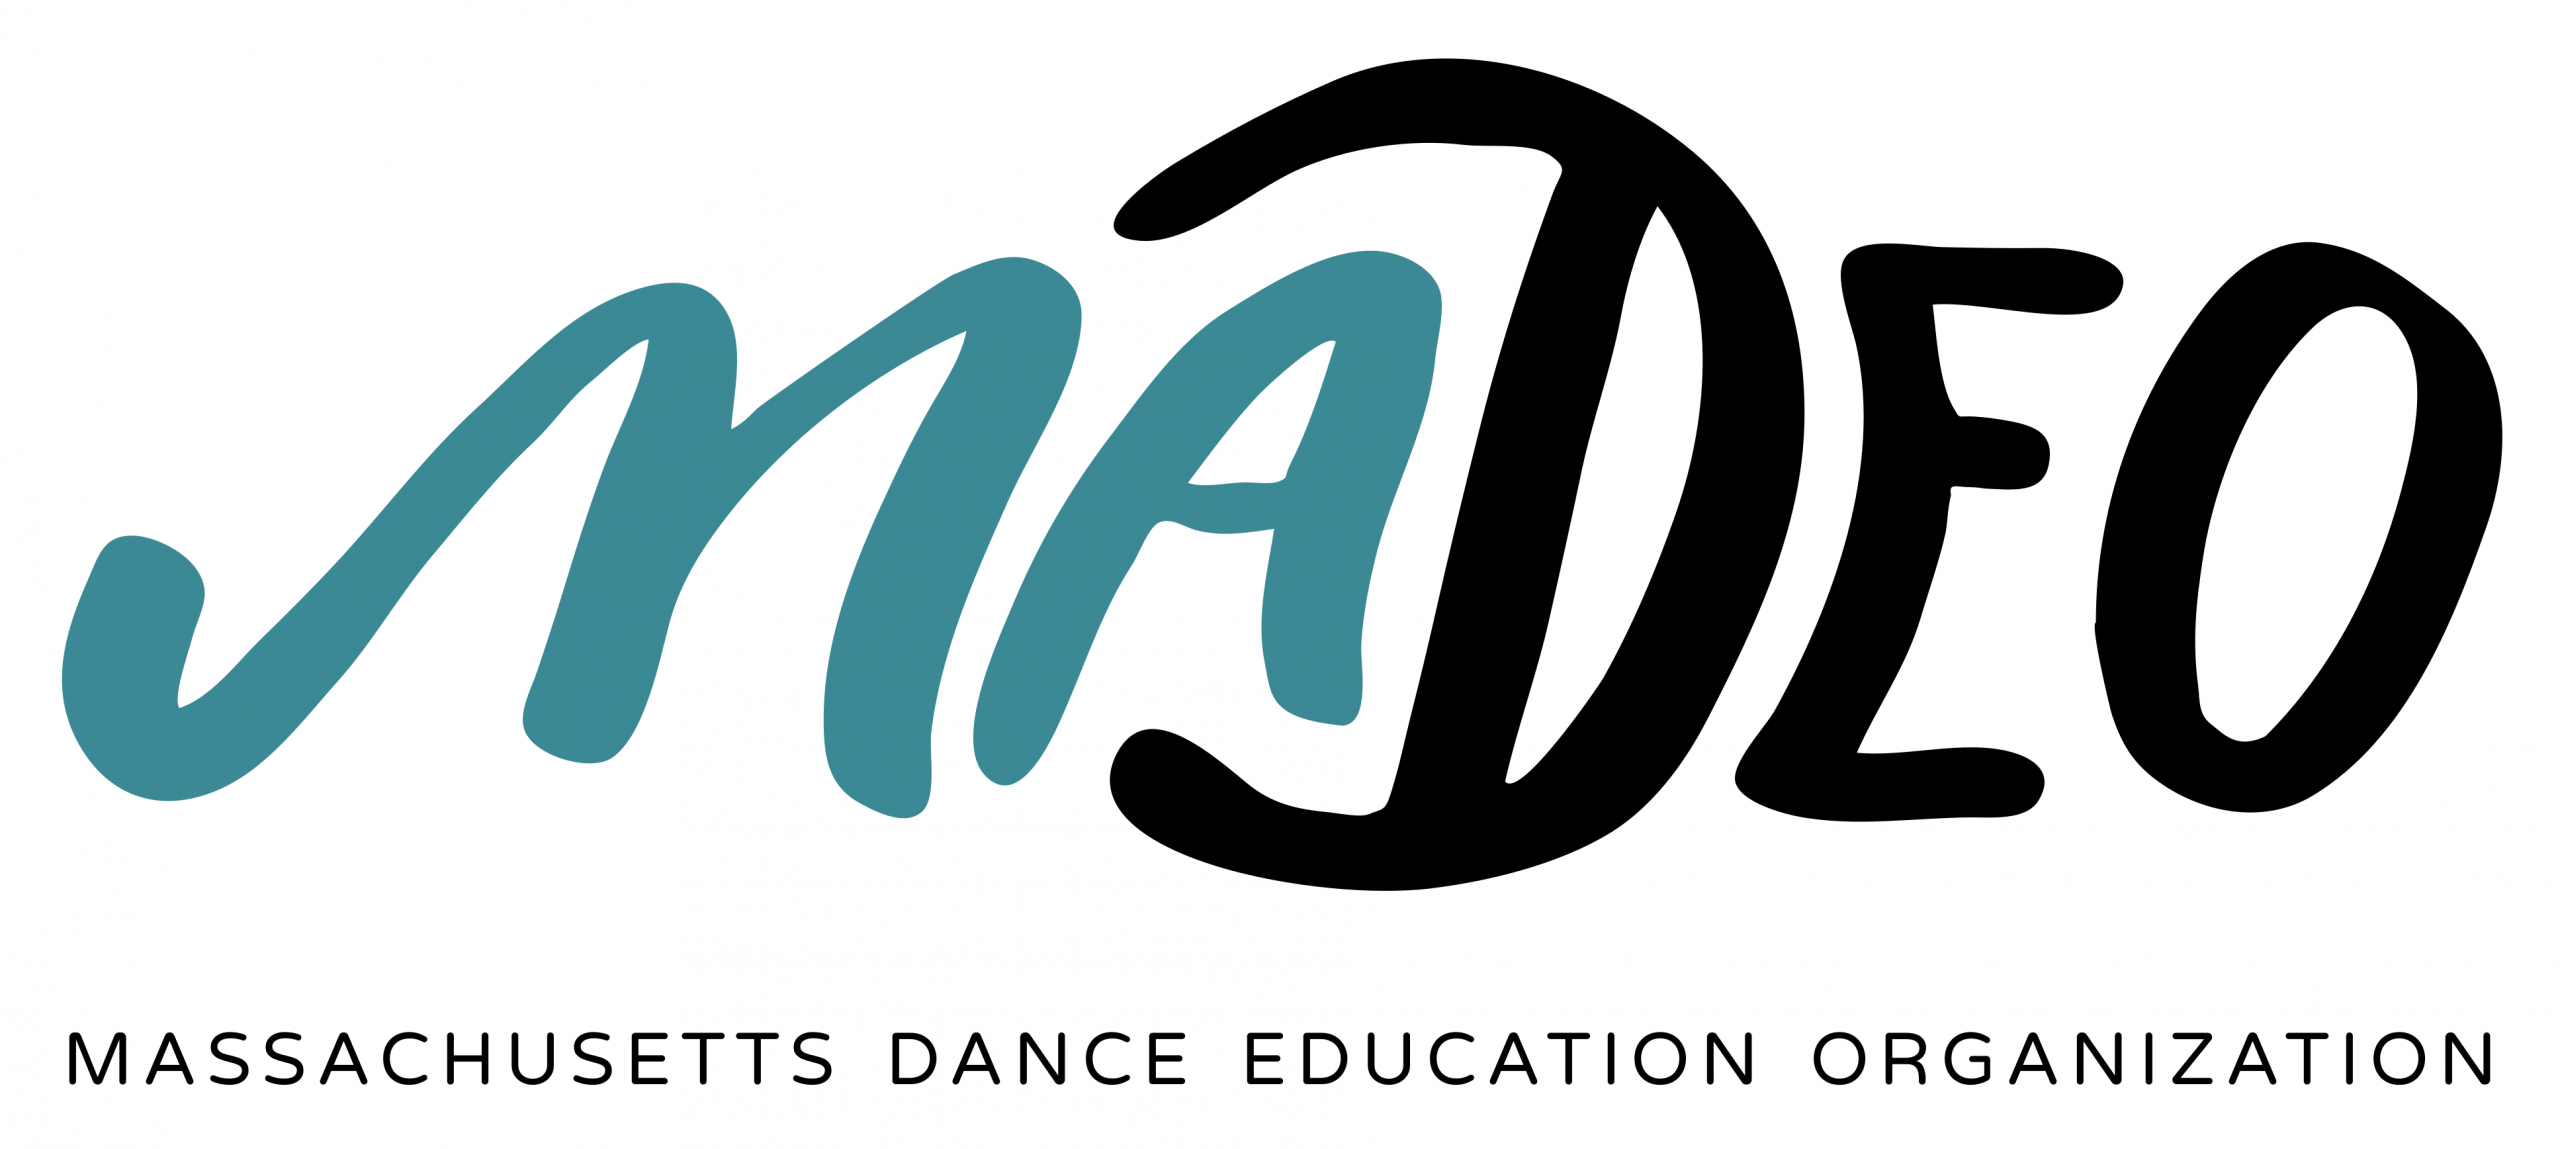 Massachusetts Dance Education Association